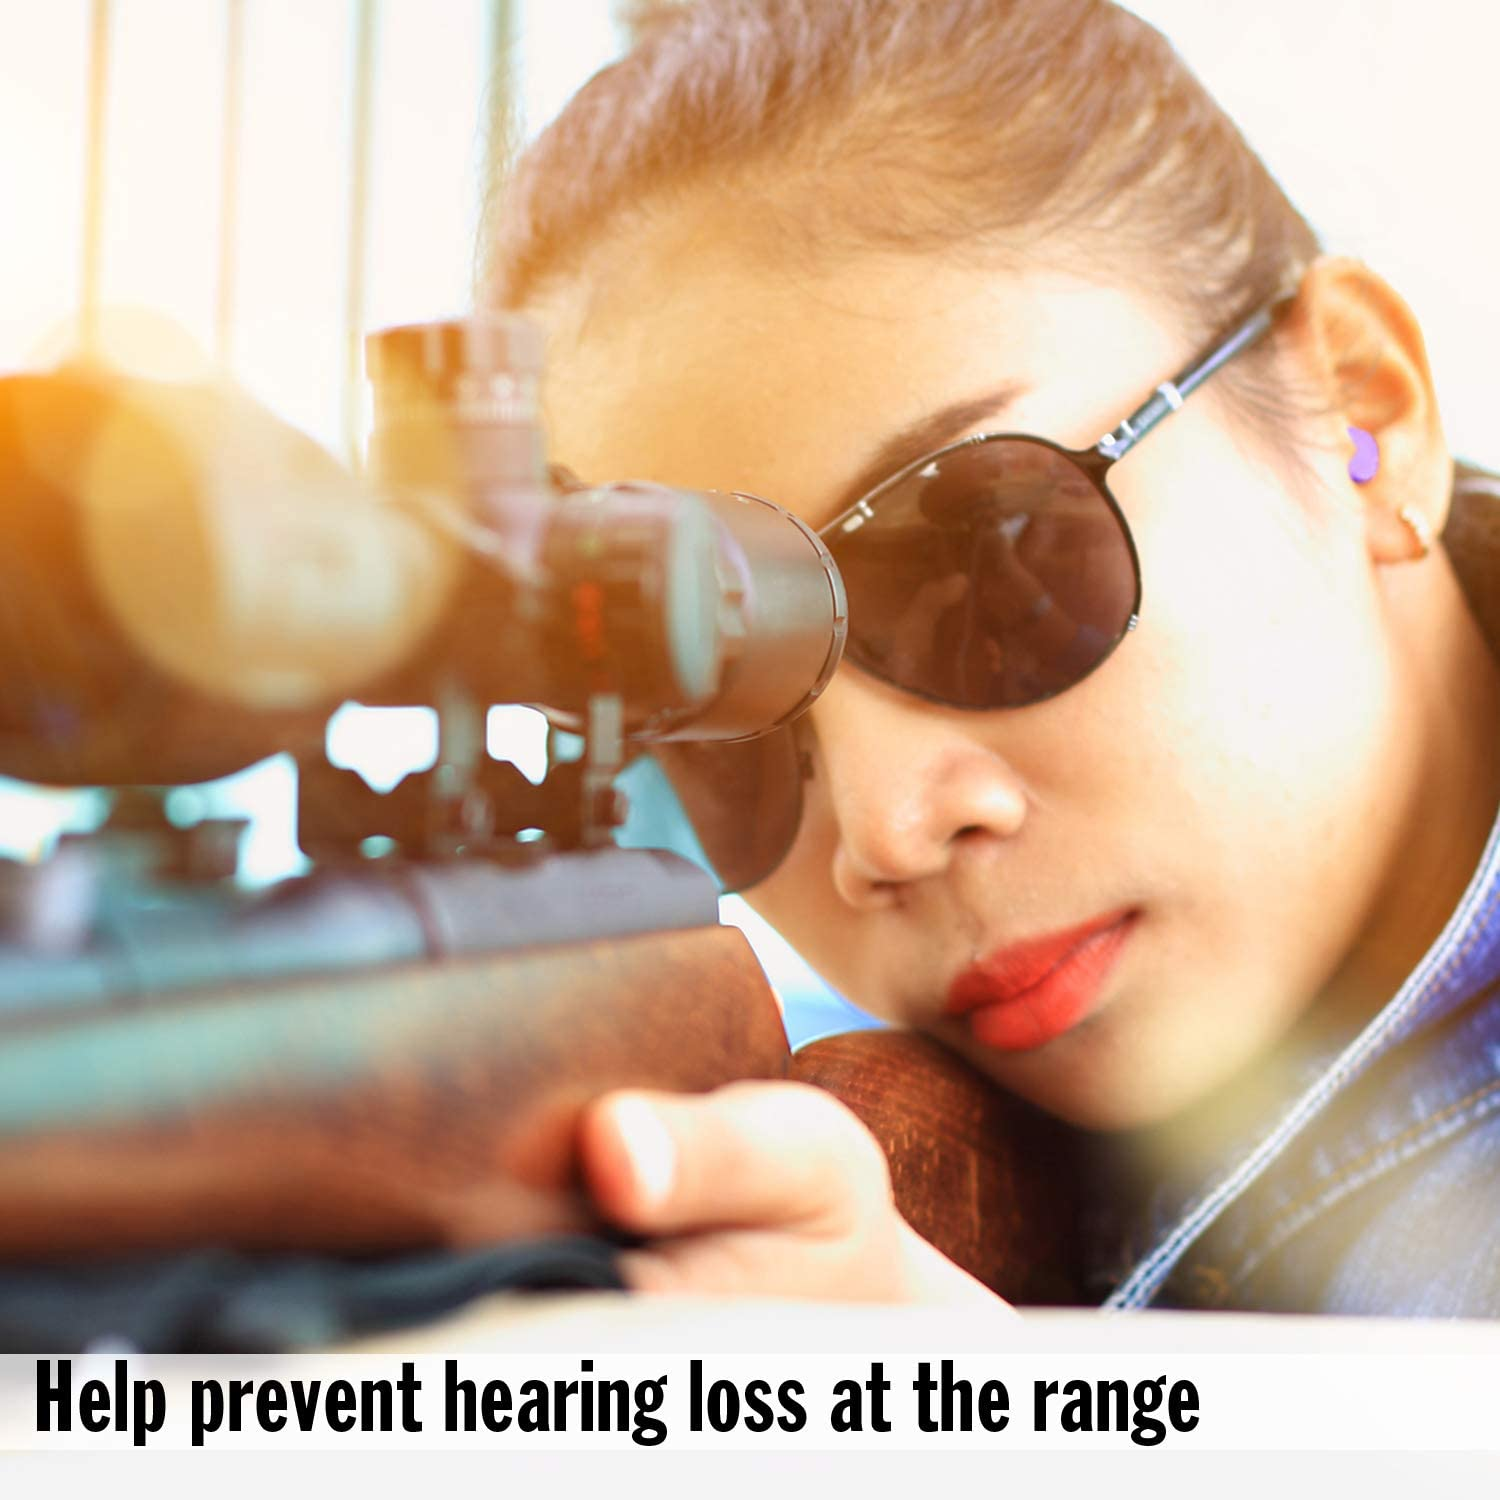 Mack's Slim Fit Soft Foam Shooting Earplugs, 7 Pair with Travel Case – Small Ear Plugs for Hunting, Tactical, Target, Skeet and Trap Shooting : Hunting Safety Glasses : Sports & Outdoors